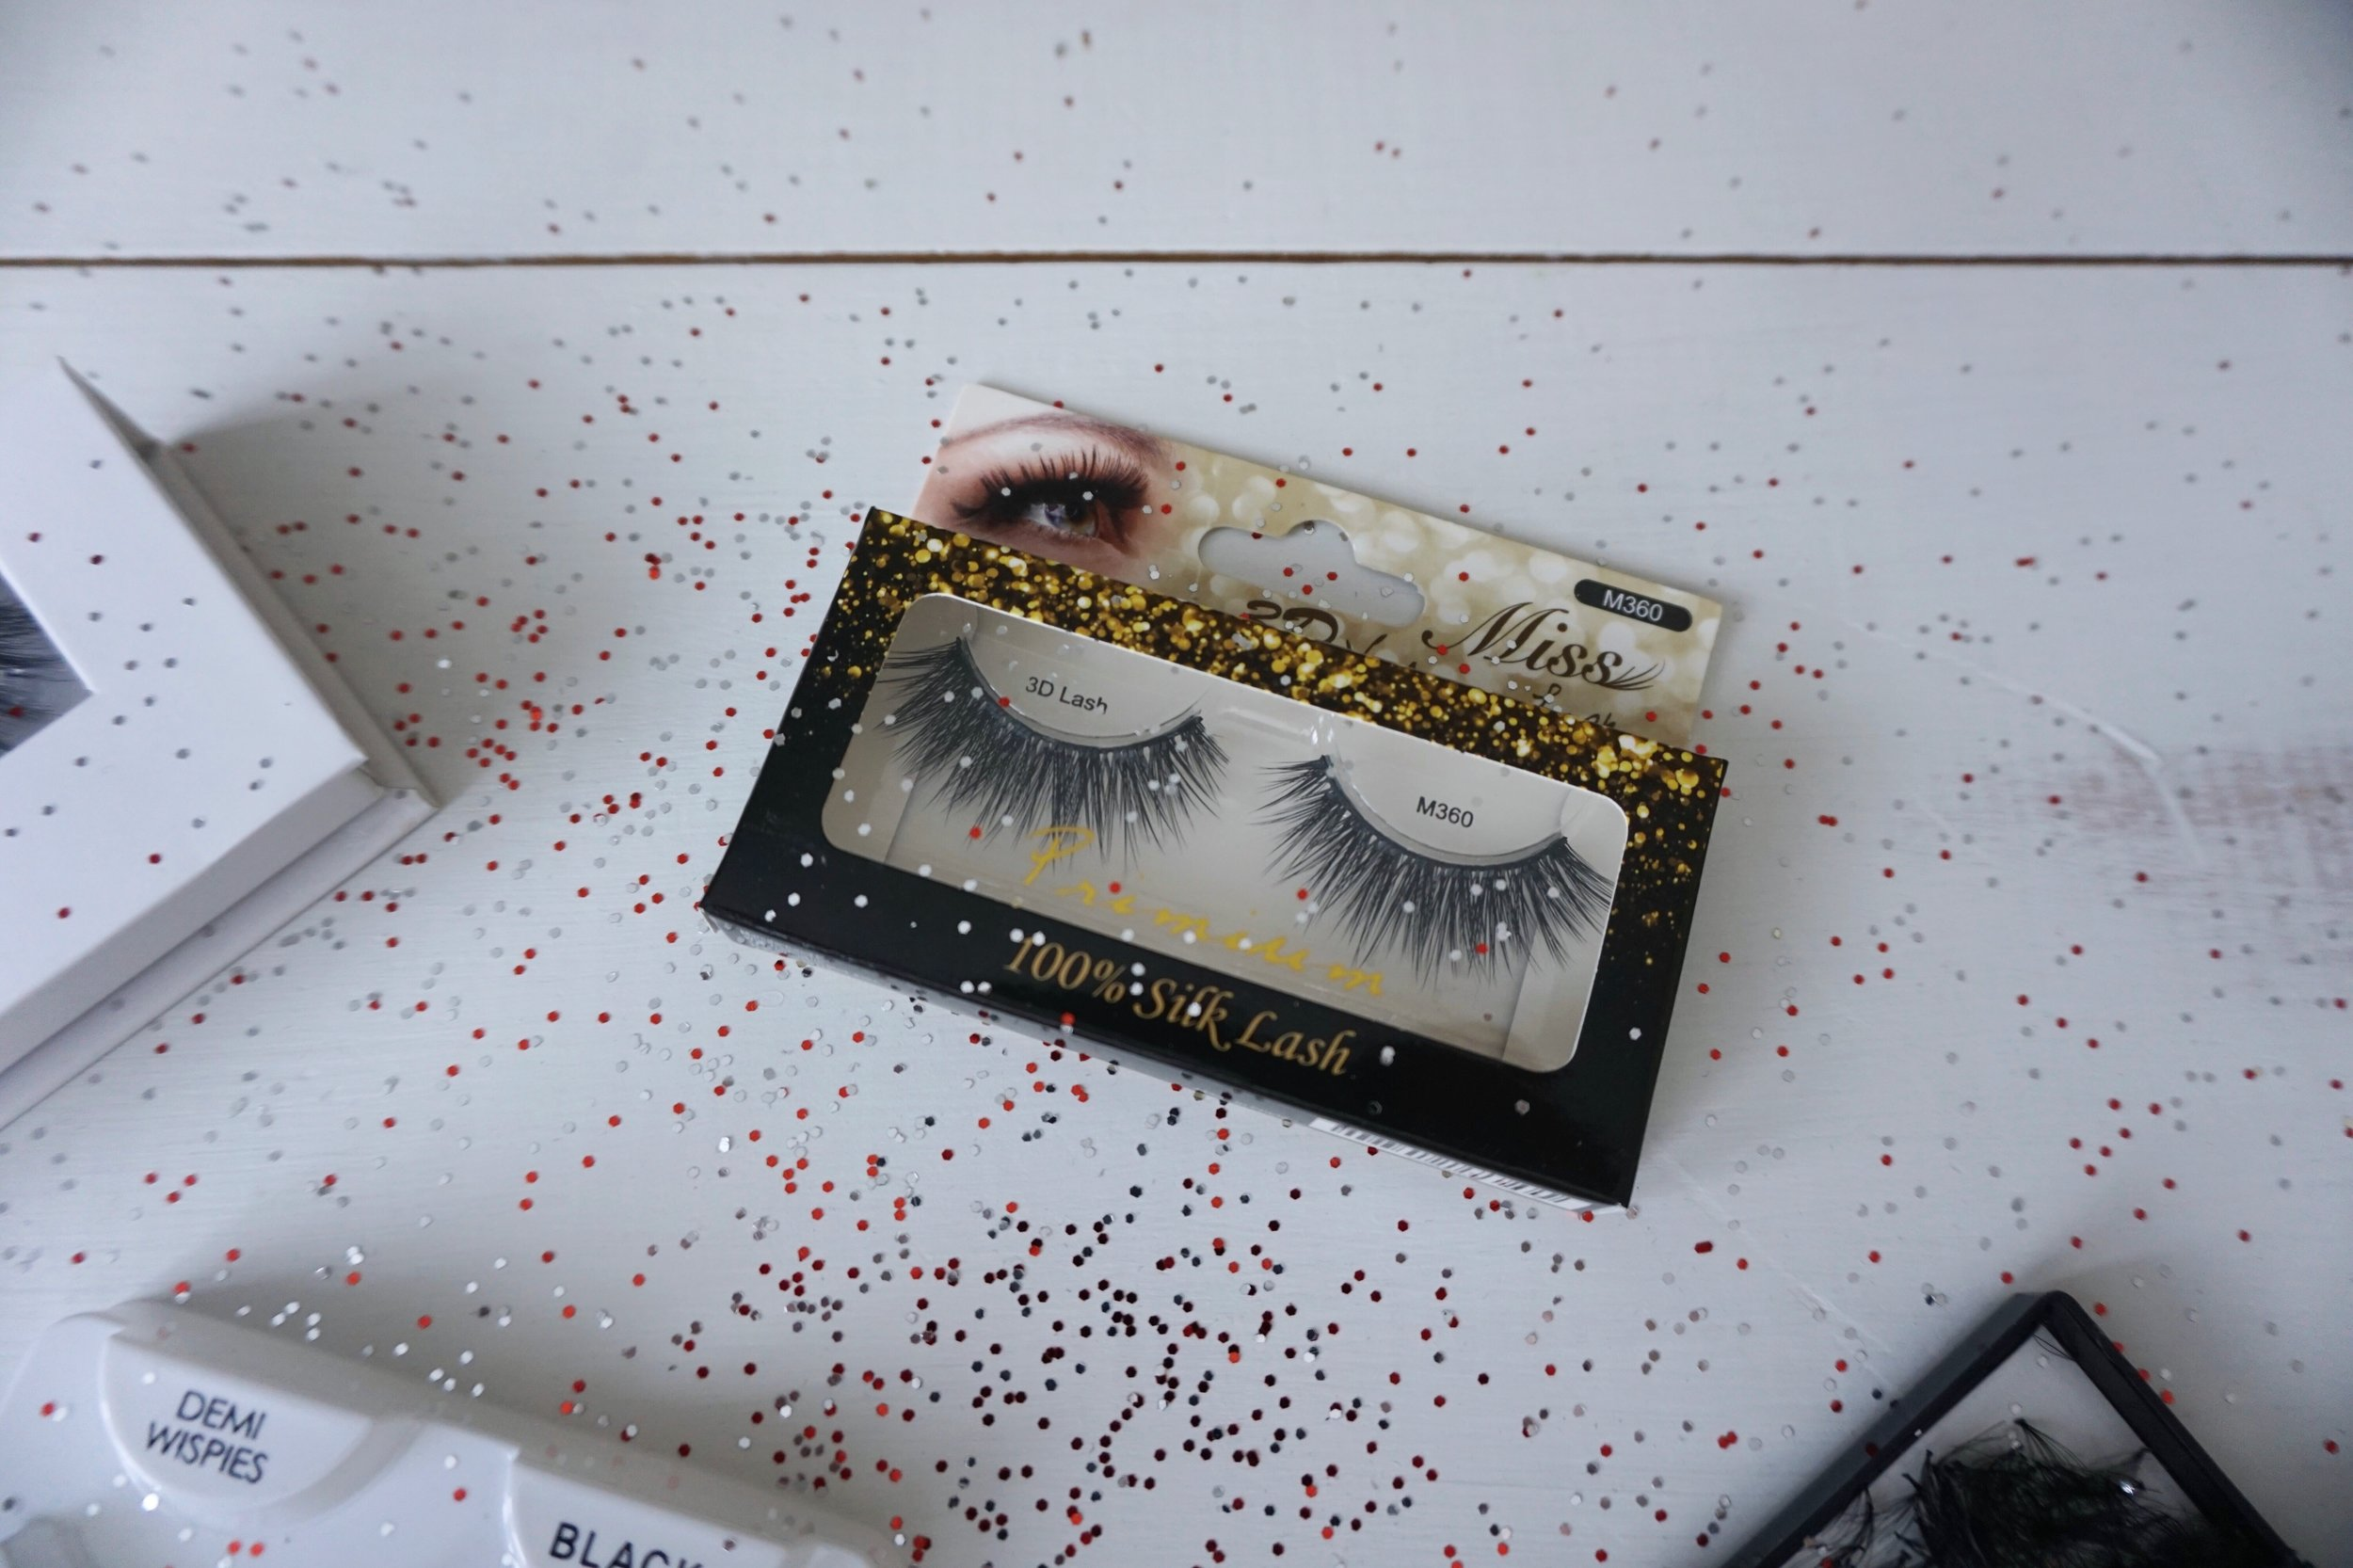 Best Cruelty-Free False Lashes (Miss 3D) - Artistry by Jacquie, Ottawa Makeup Artist